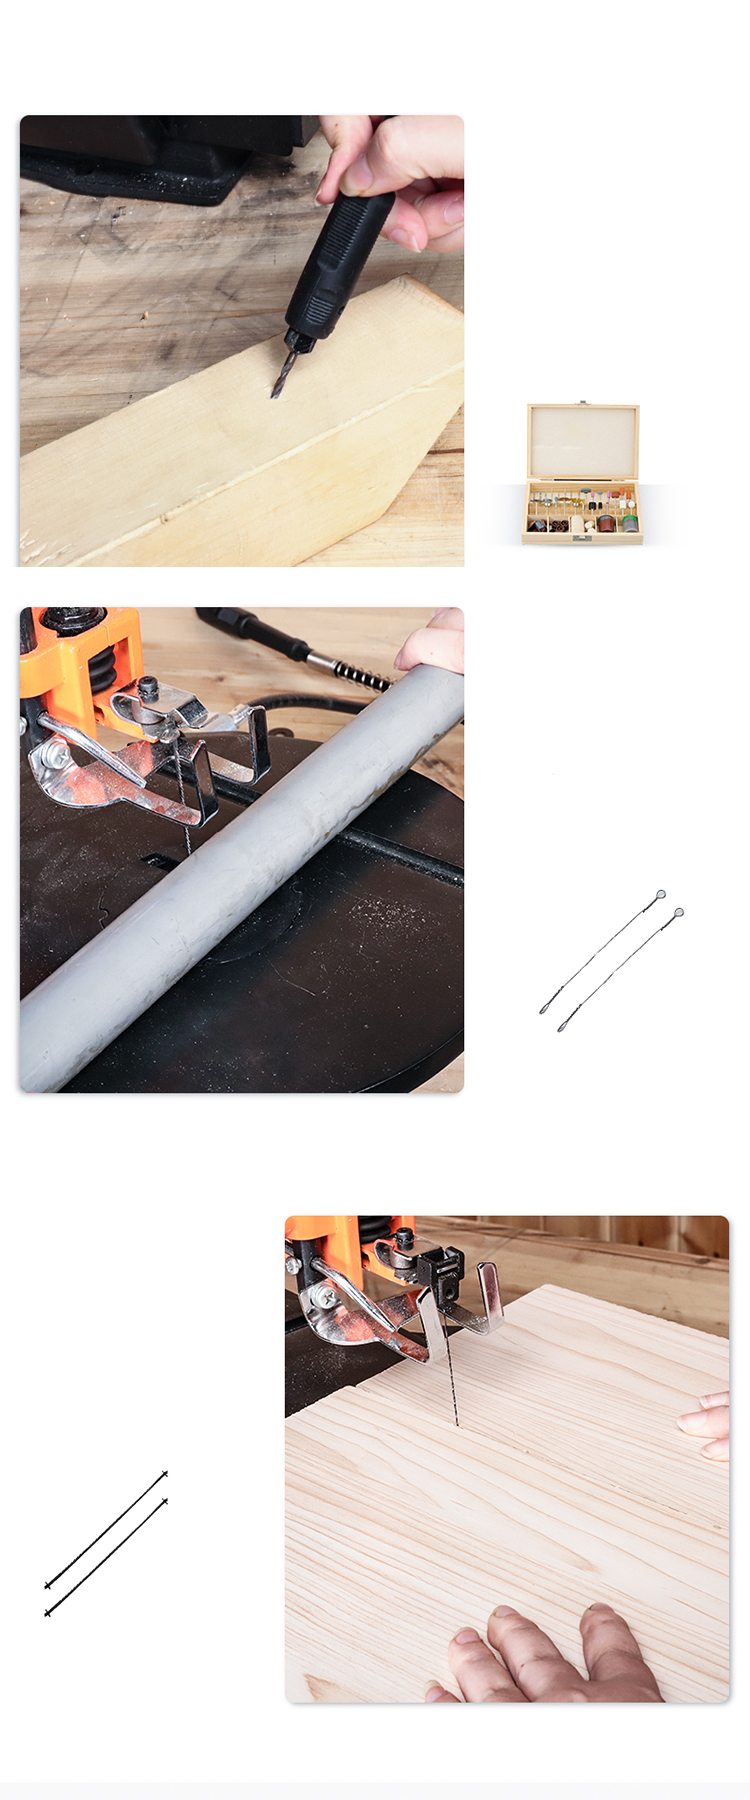 Hc71556371ca84292b70a42ccb71f272dy - LIVTER 16 inch Electric Scroll Jig Saw Woodworking Wire Sawing Carving Machine Carpentry Cutting Table Saw Adjustable Speed